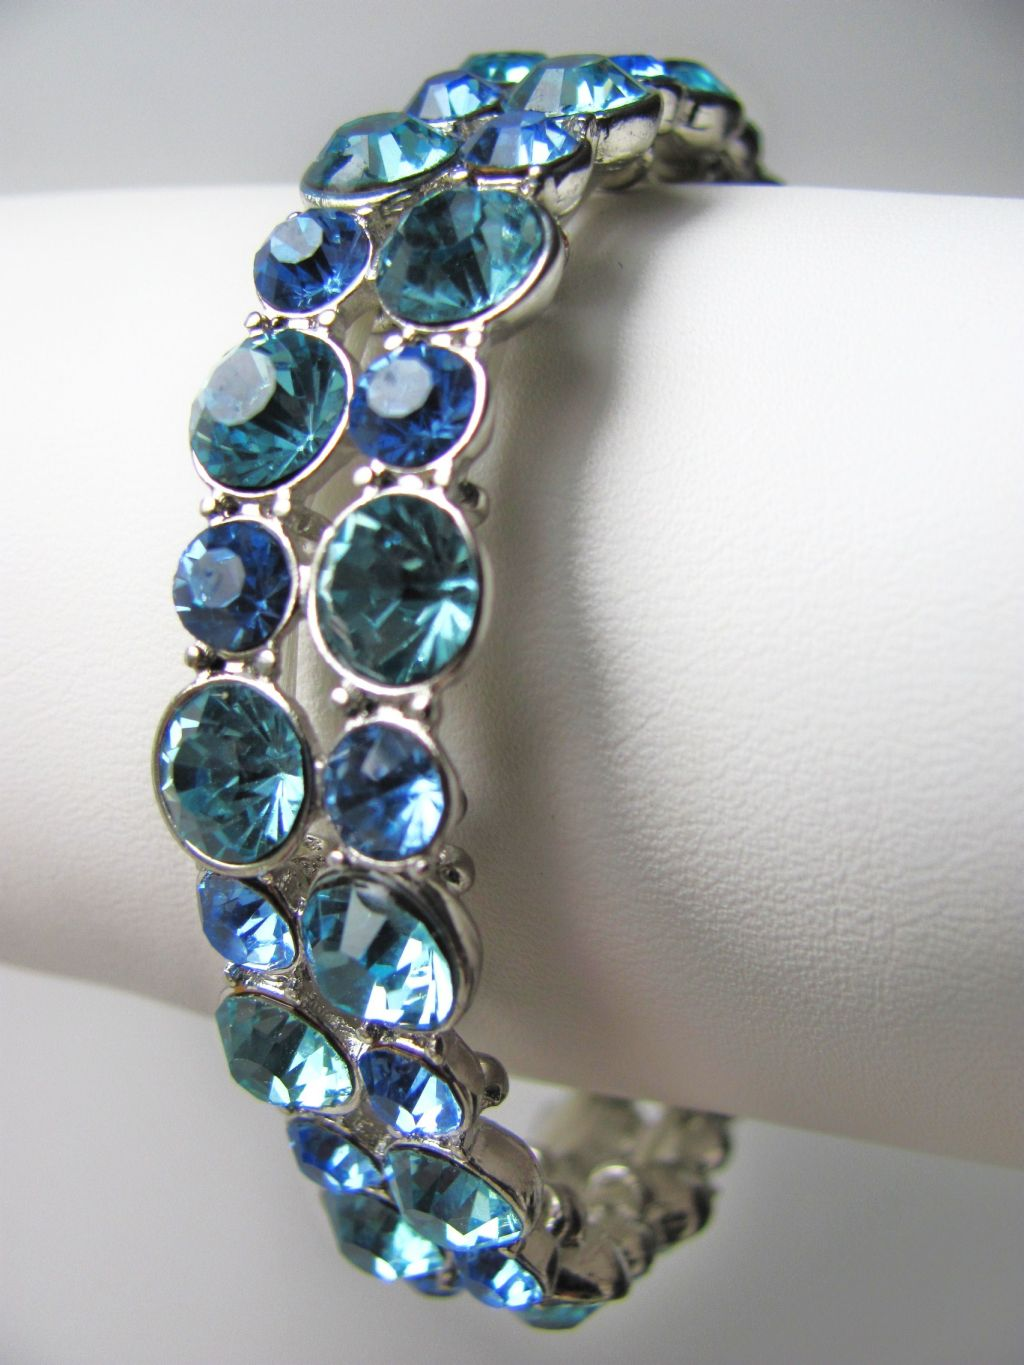 1/2 Wide Blue Turquoise Stretching Bangle Bracelet, Genuine Austrian Crystals